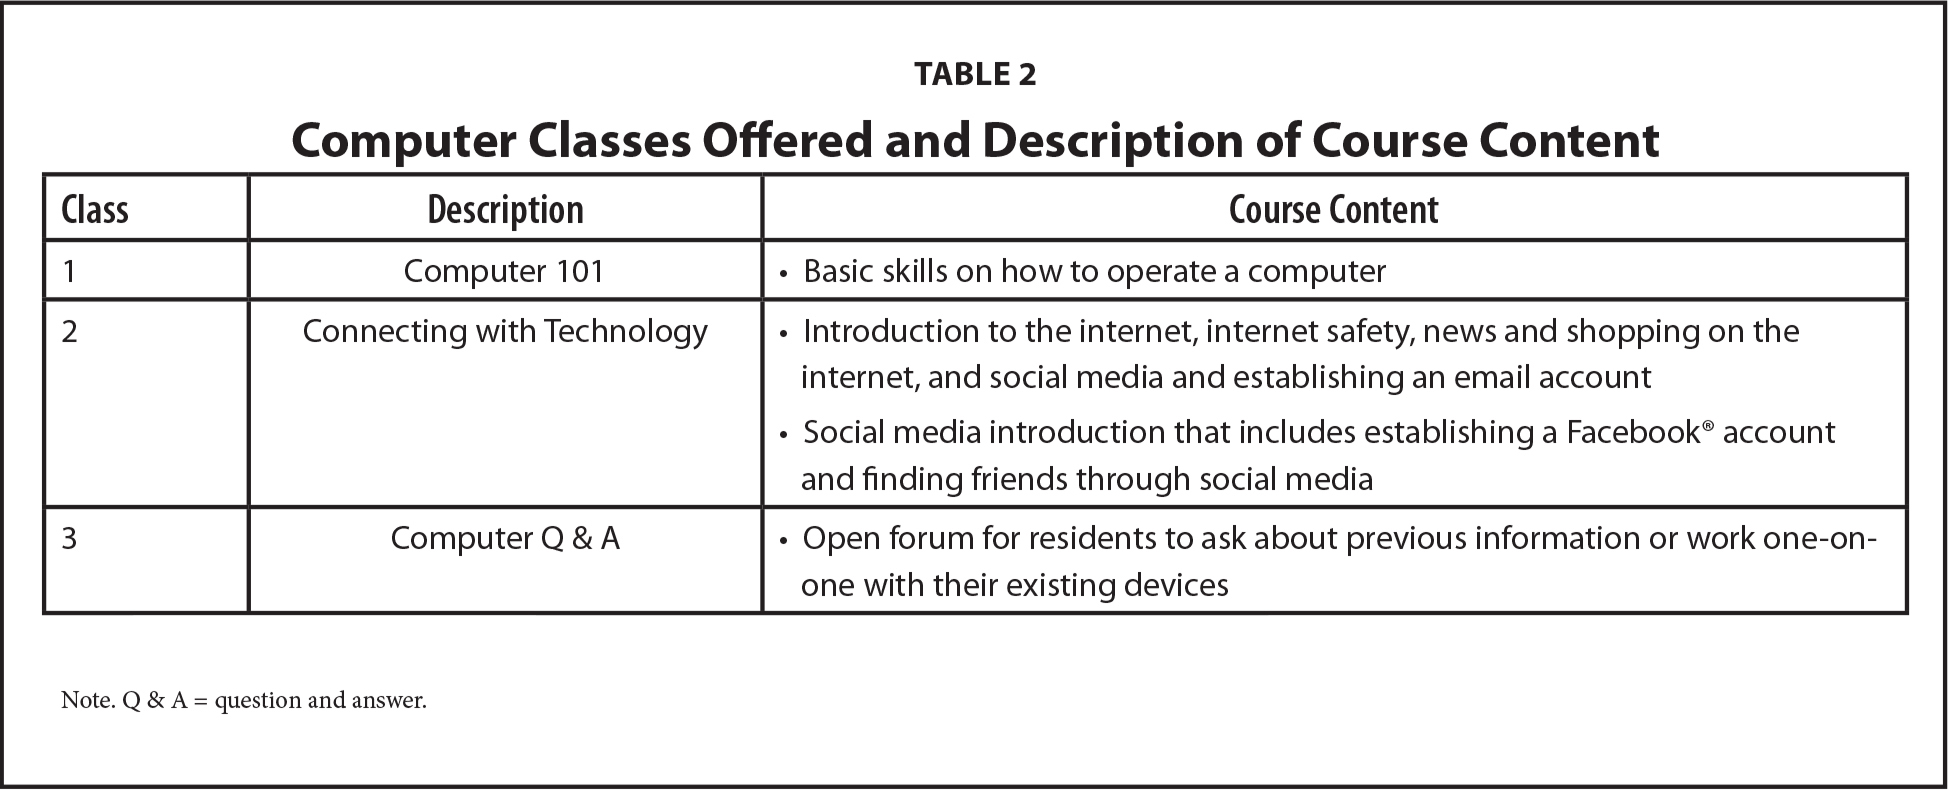 Computer Classes Offered and Description of Course Content